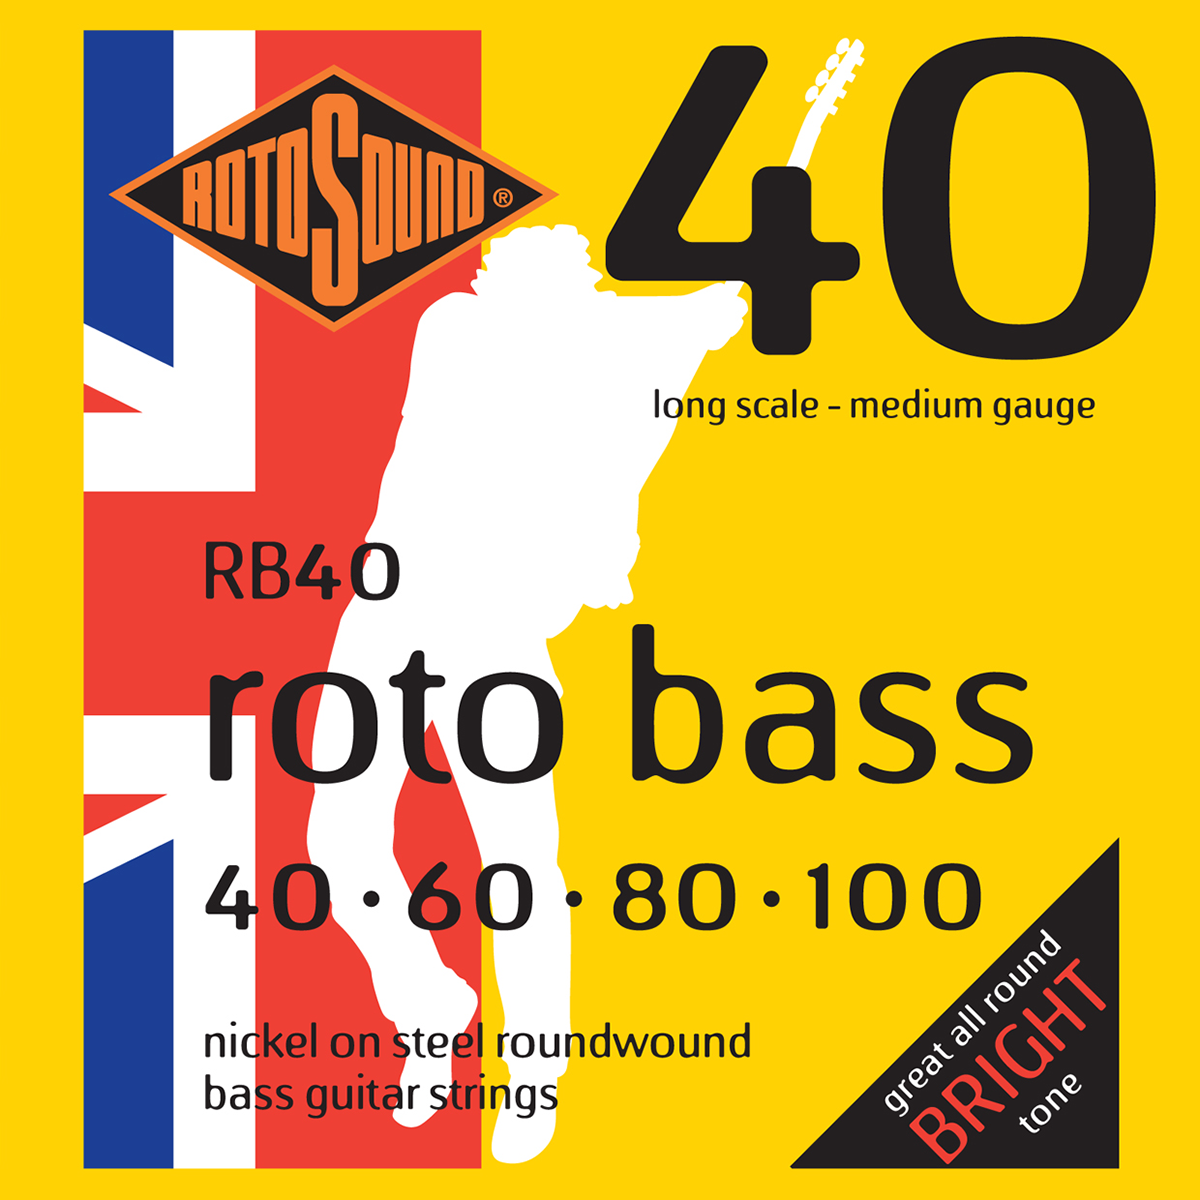 Rotosound RB40 Rotobass Long Scale Medium 40-100 Bass Strings